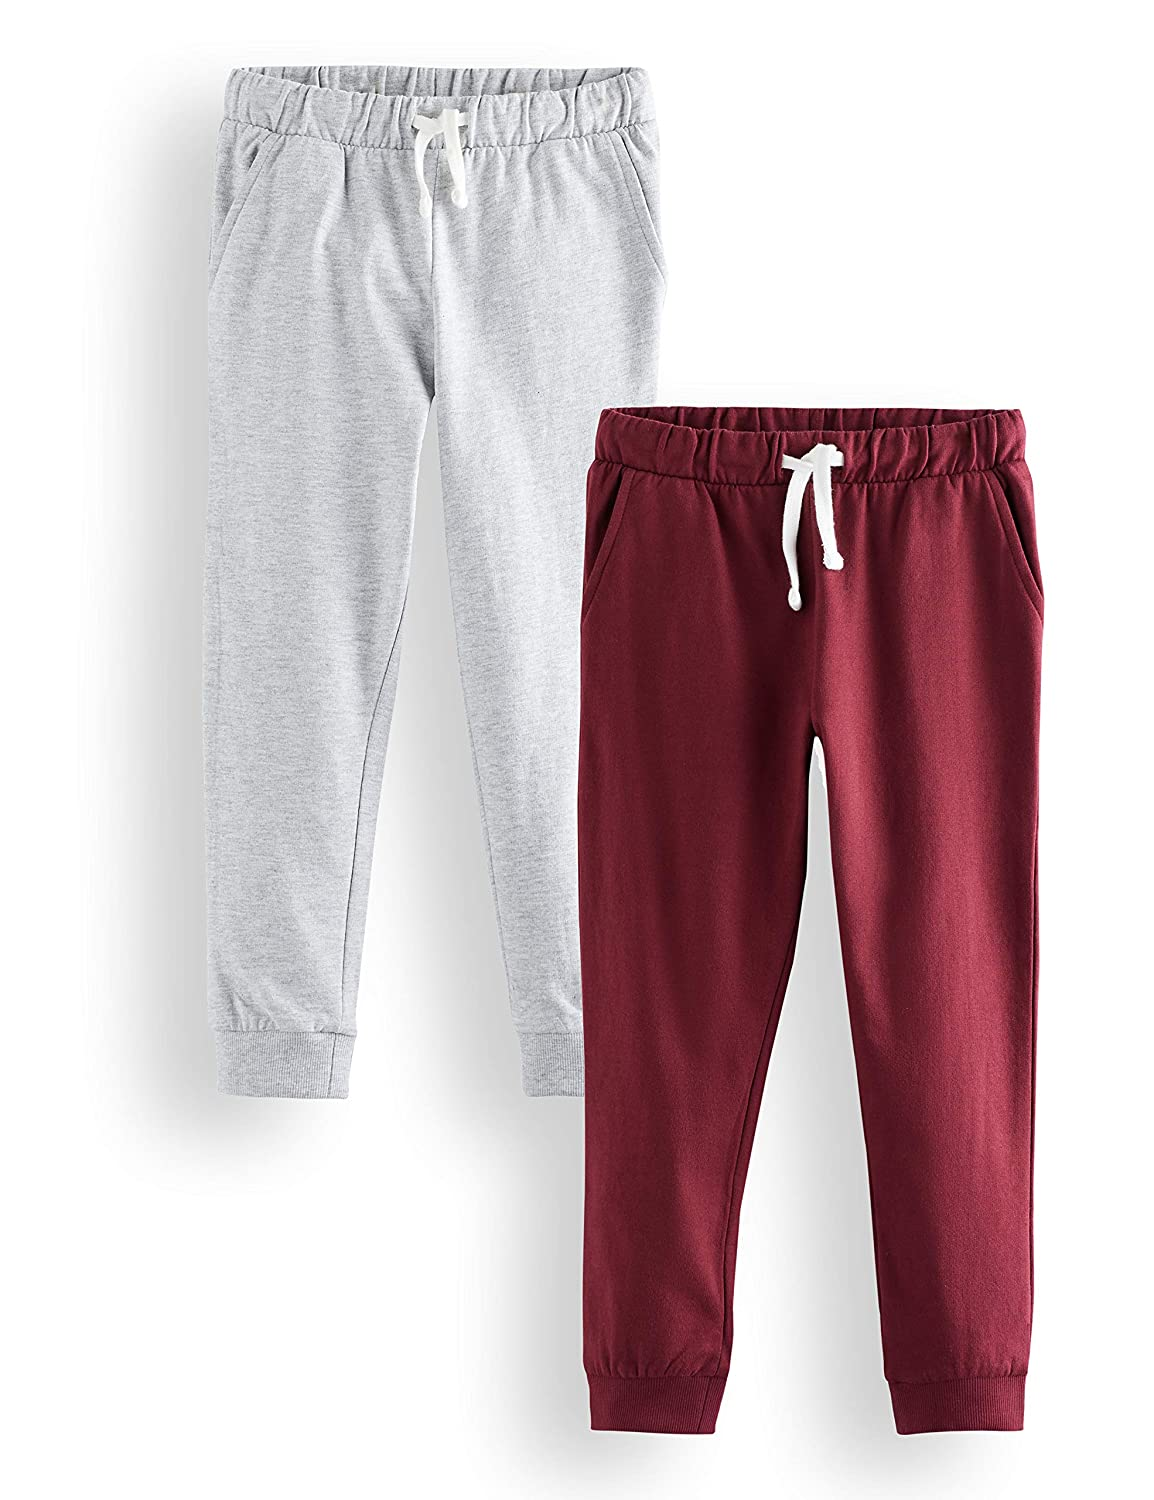 Pack of 2 RED WAGON Boys Sports Trousers